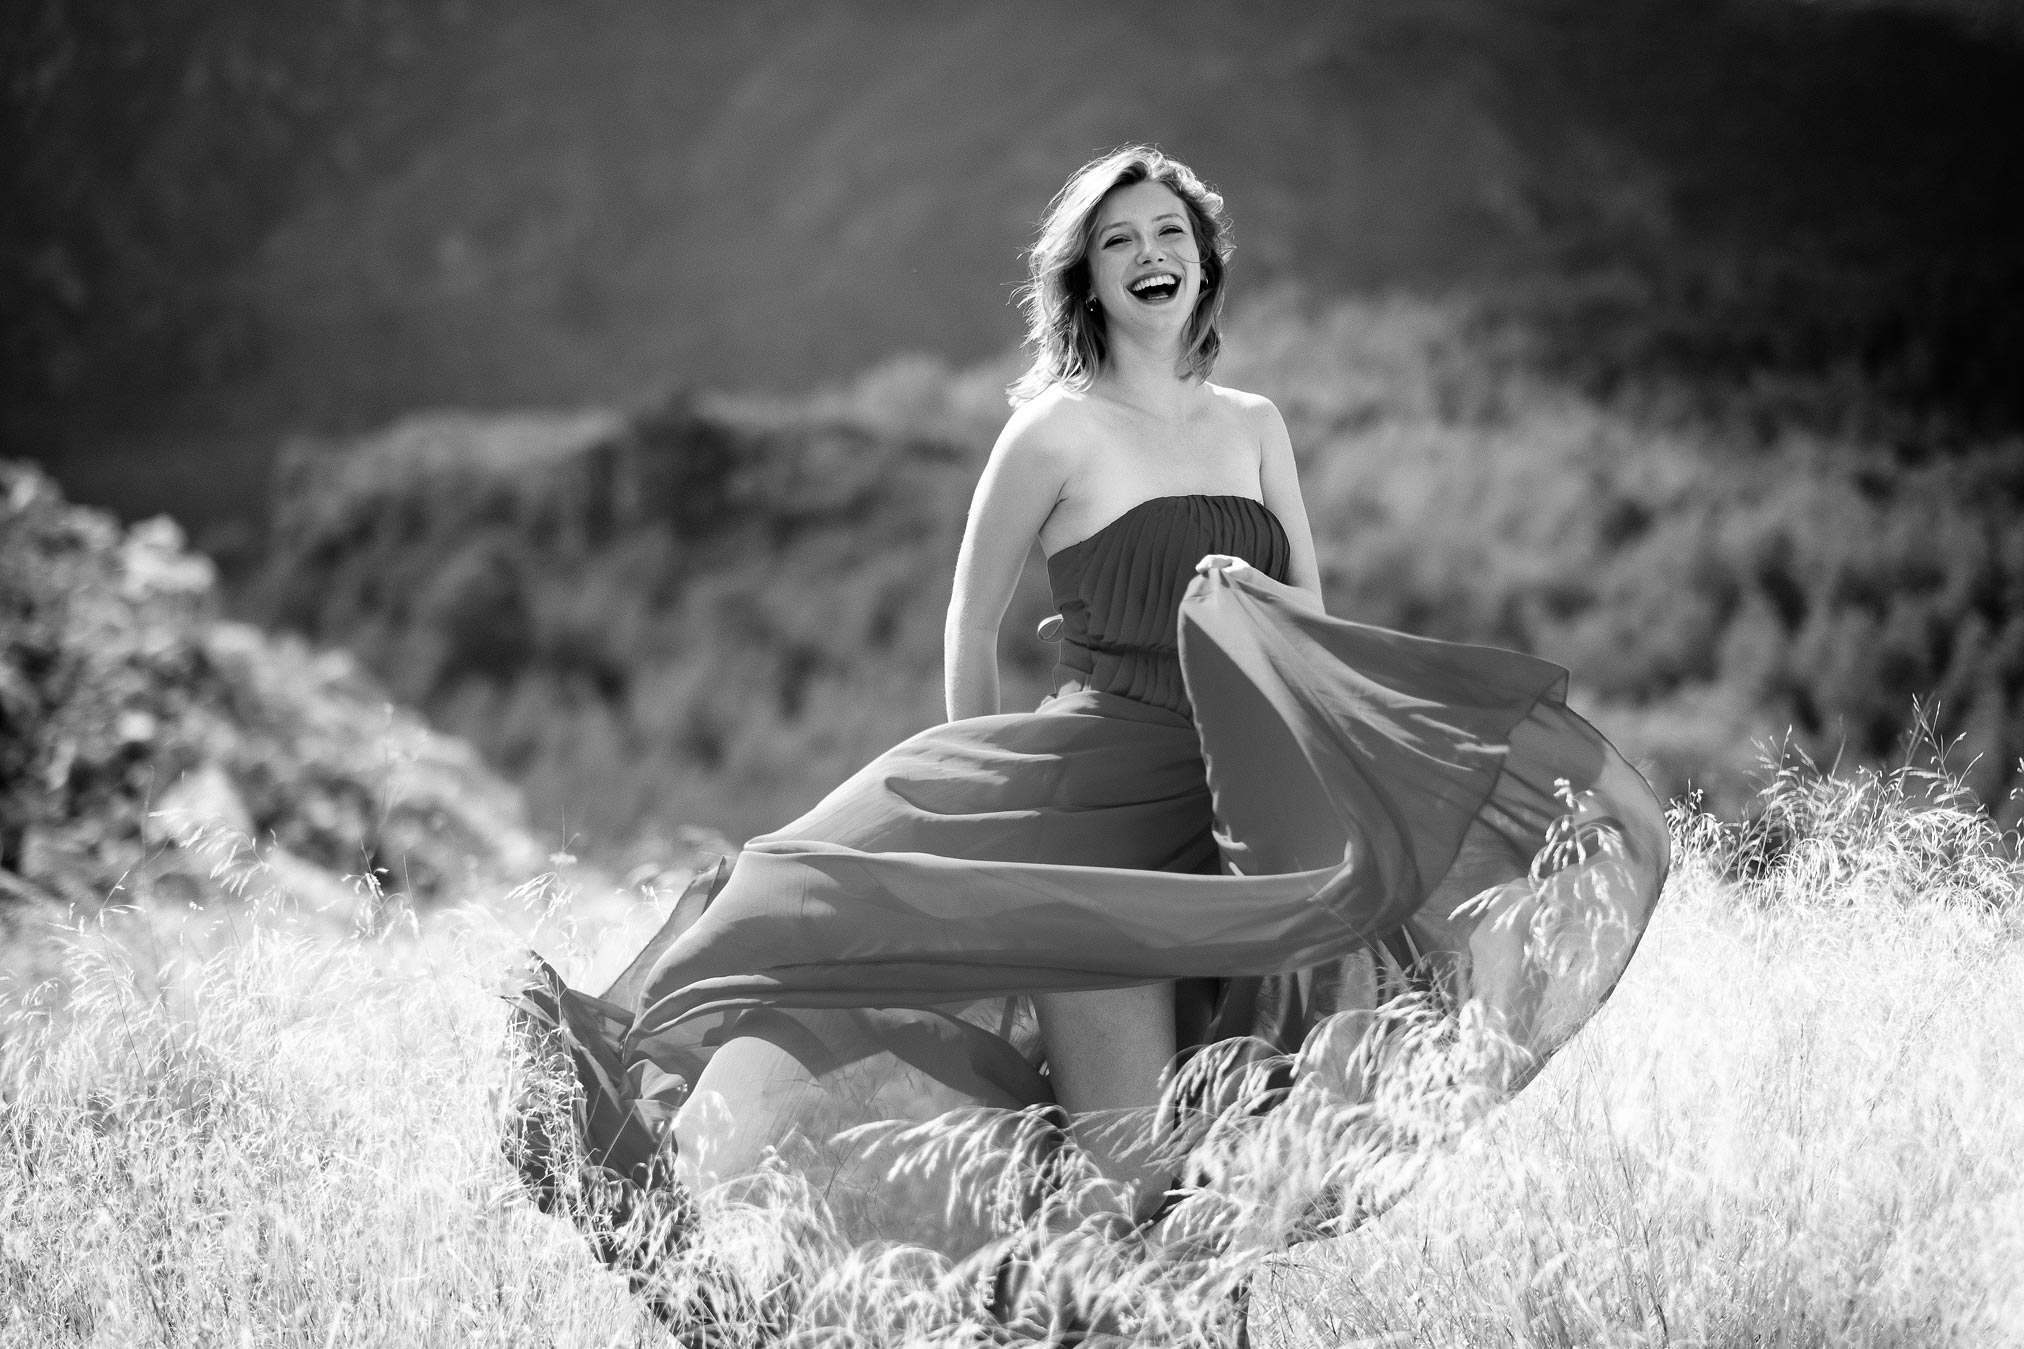 Claire Rammelkamp wafting a dress in long grass in Spain.